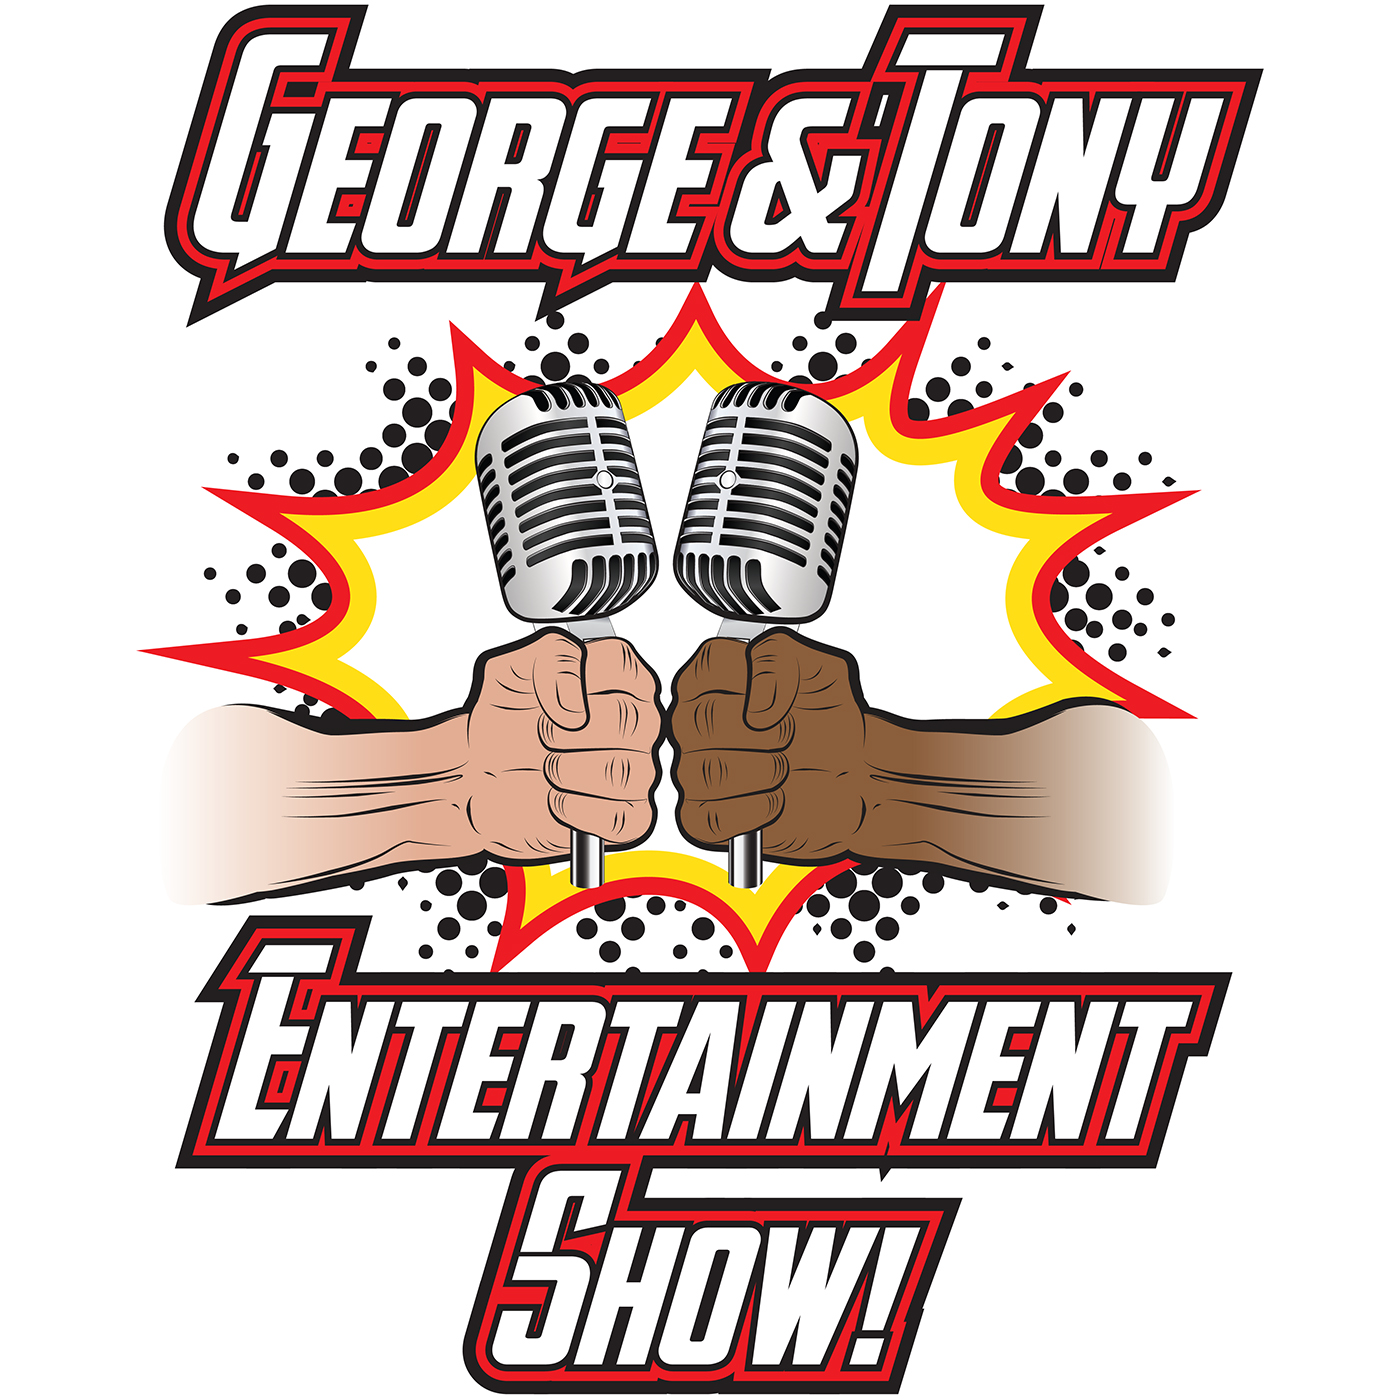 George and Tony Entertainment Show #107